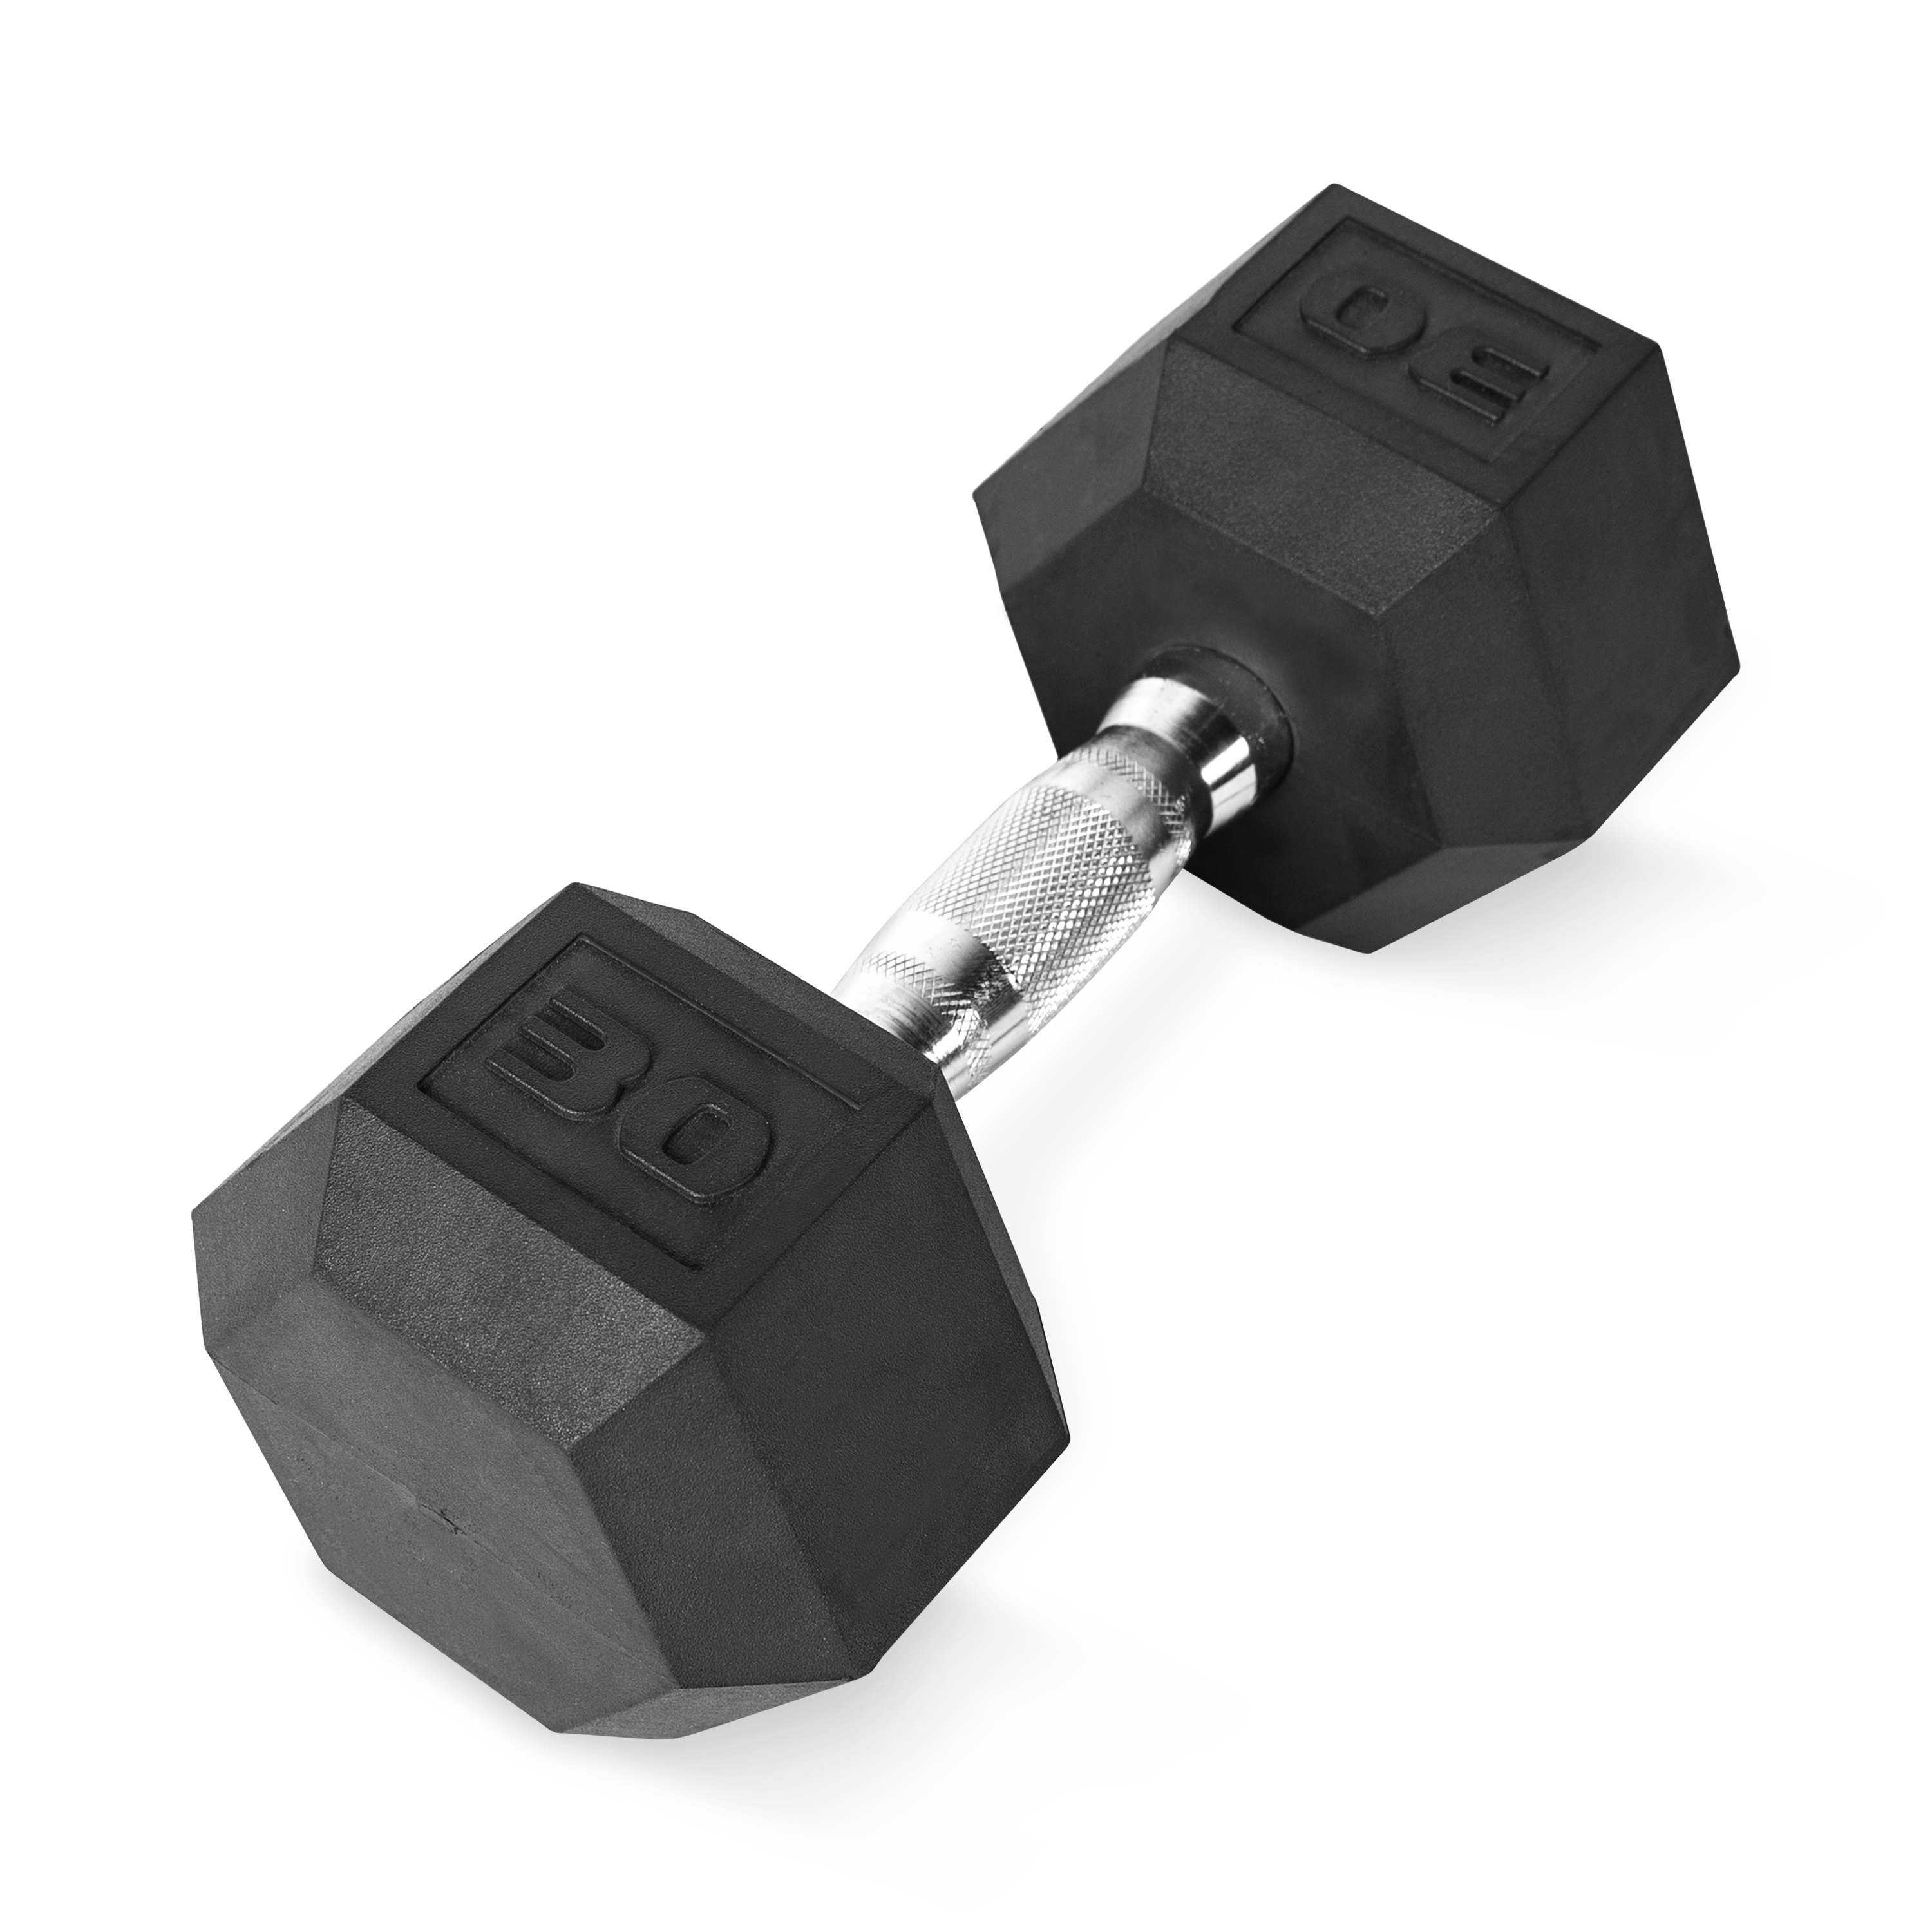 SINGLE CAP 30 lb Rubber Coated Hex Dumbell BRAND NEW